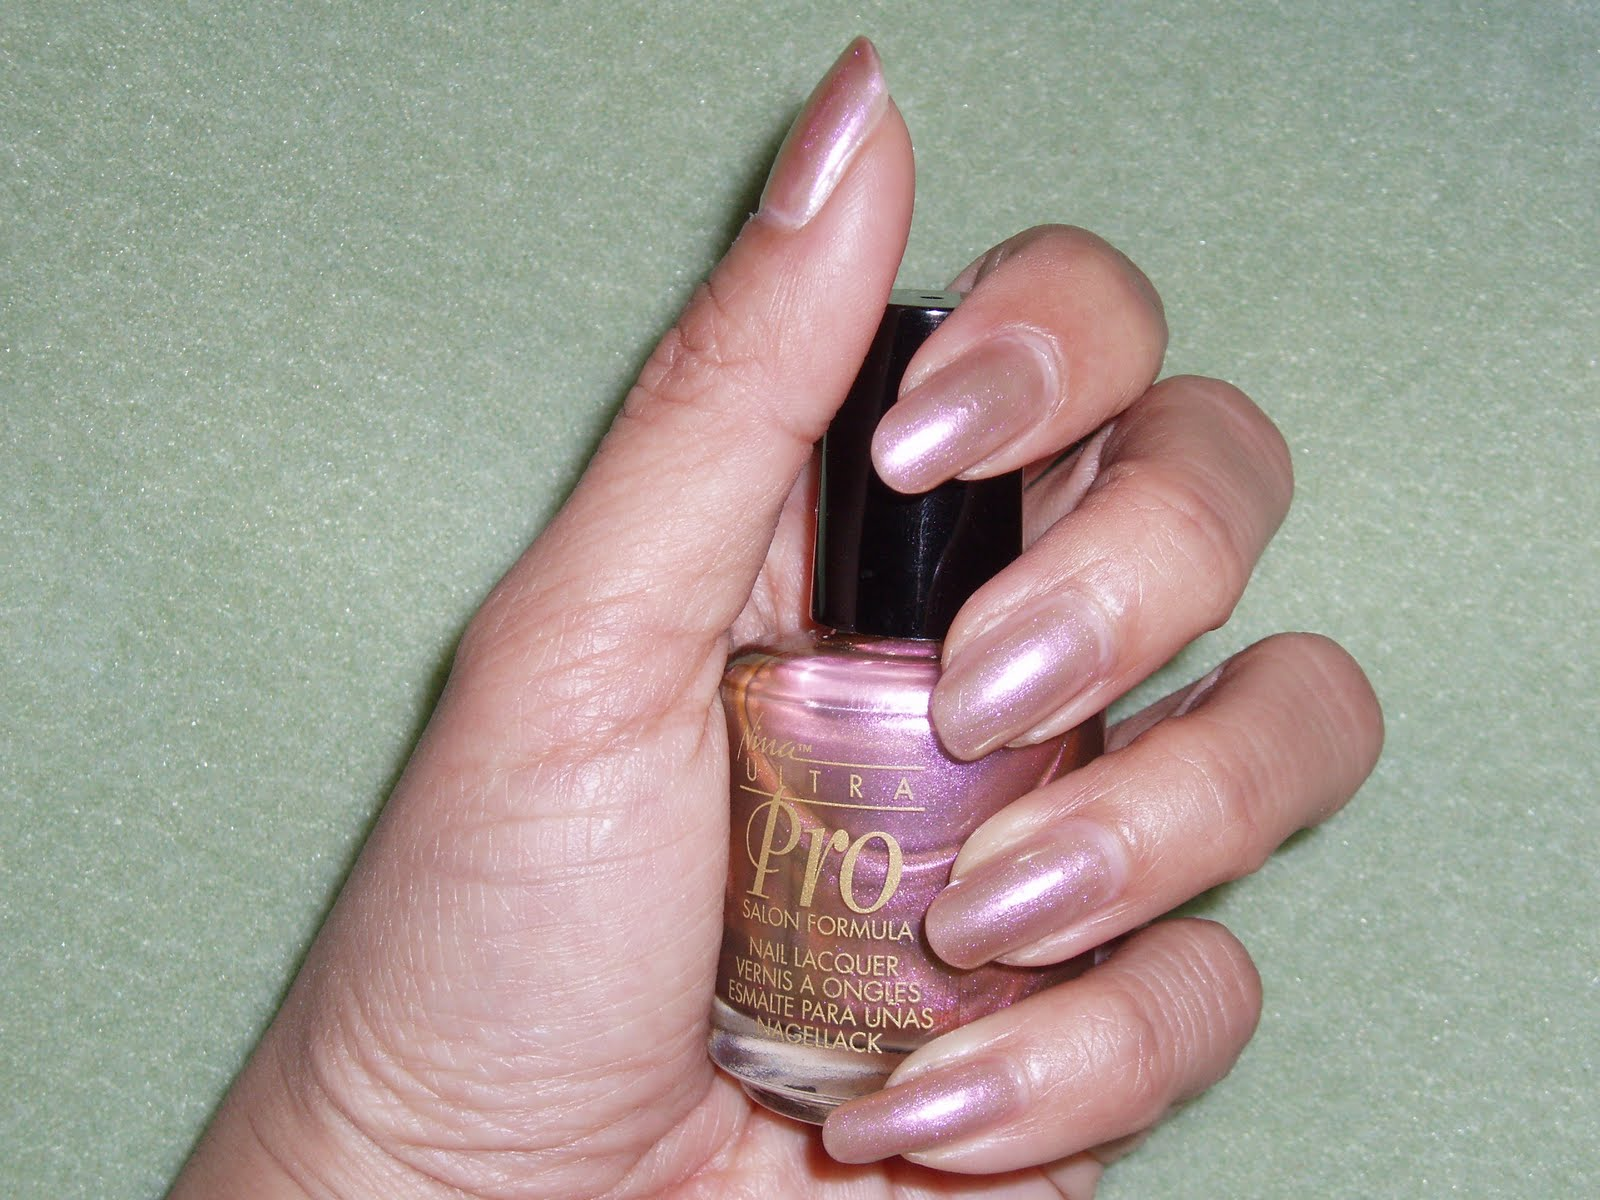 Nina Ultra Pro Nail Polish Ingredients - Creative Touch